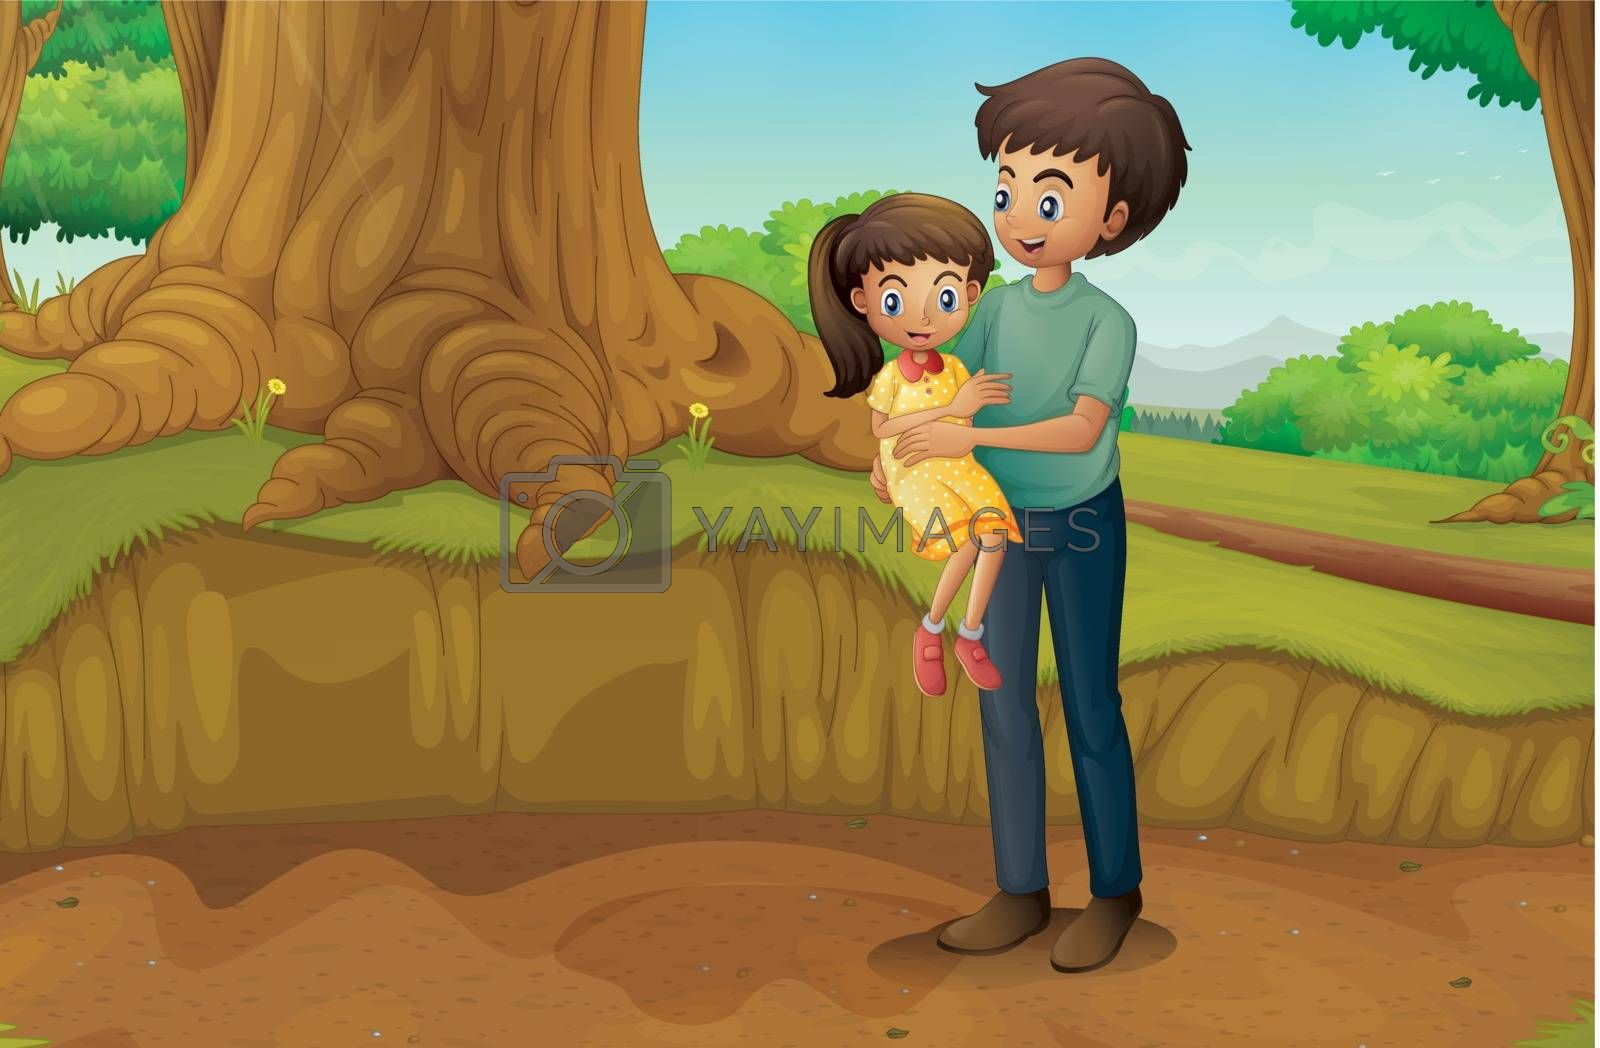 Illustration of a father and his daughter at the forest